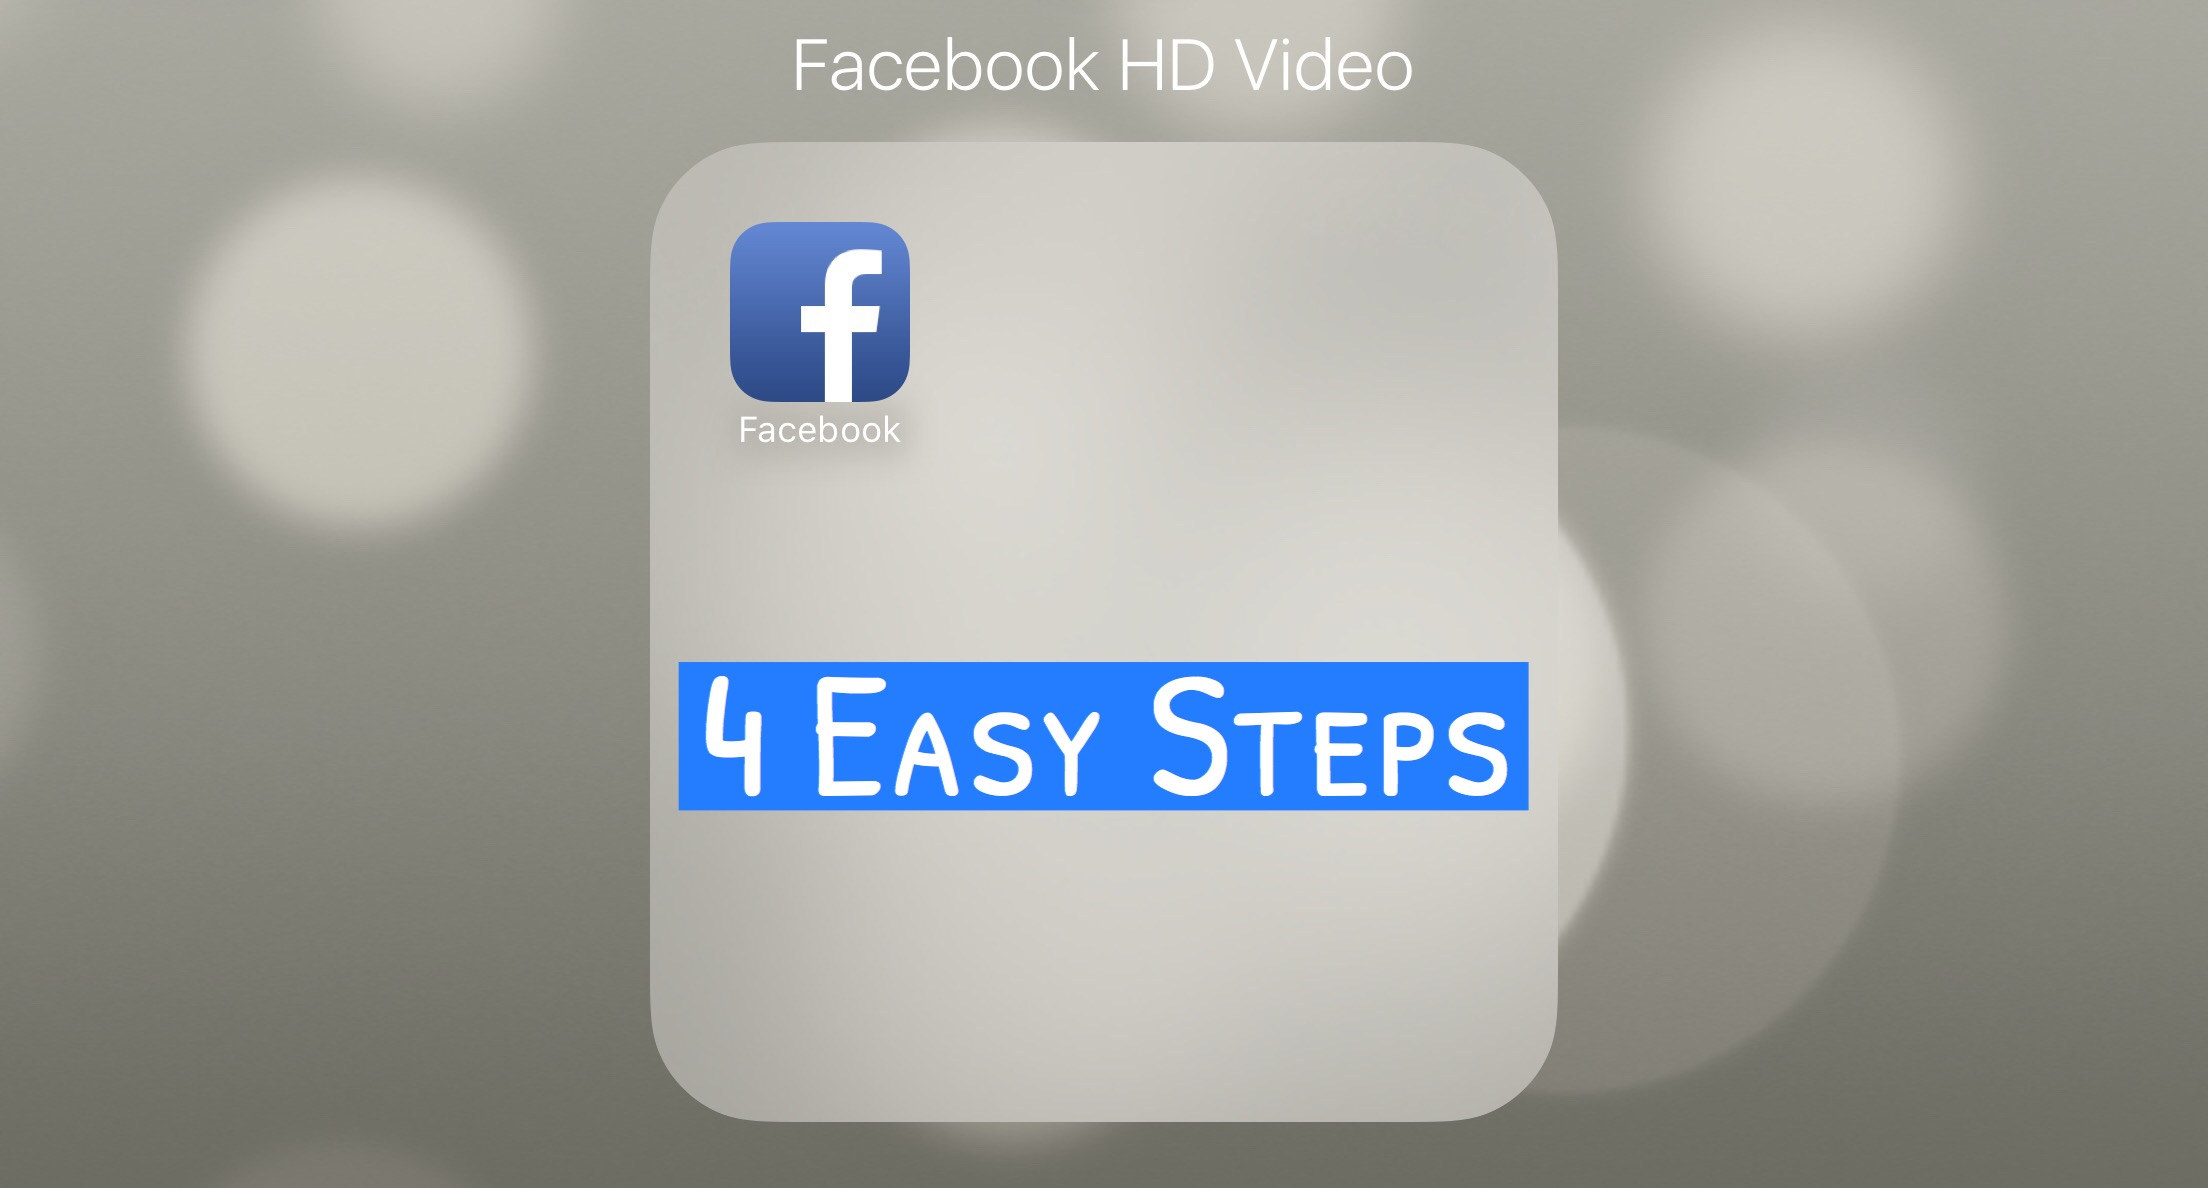 4 Easy Steps to Upload HD Videos to Facebook